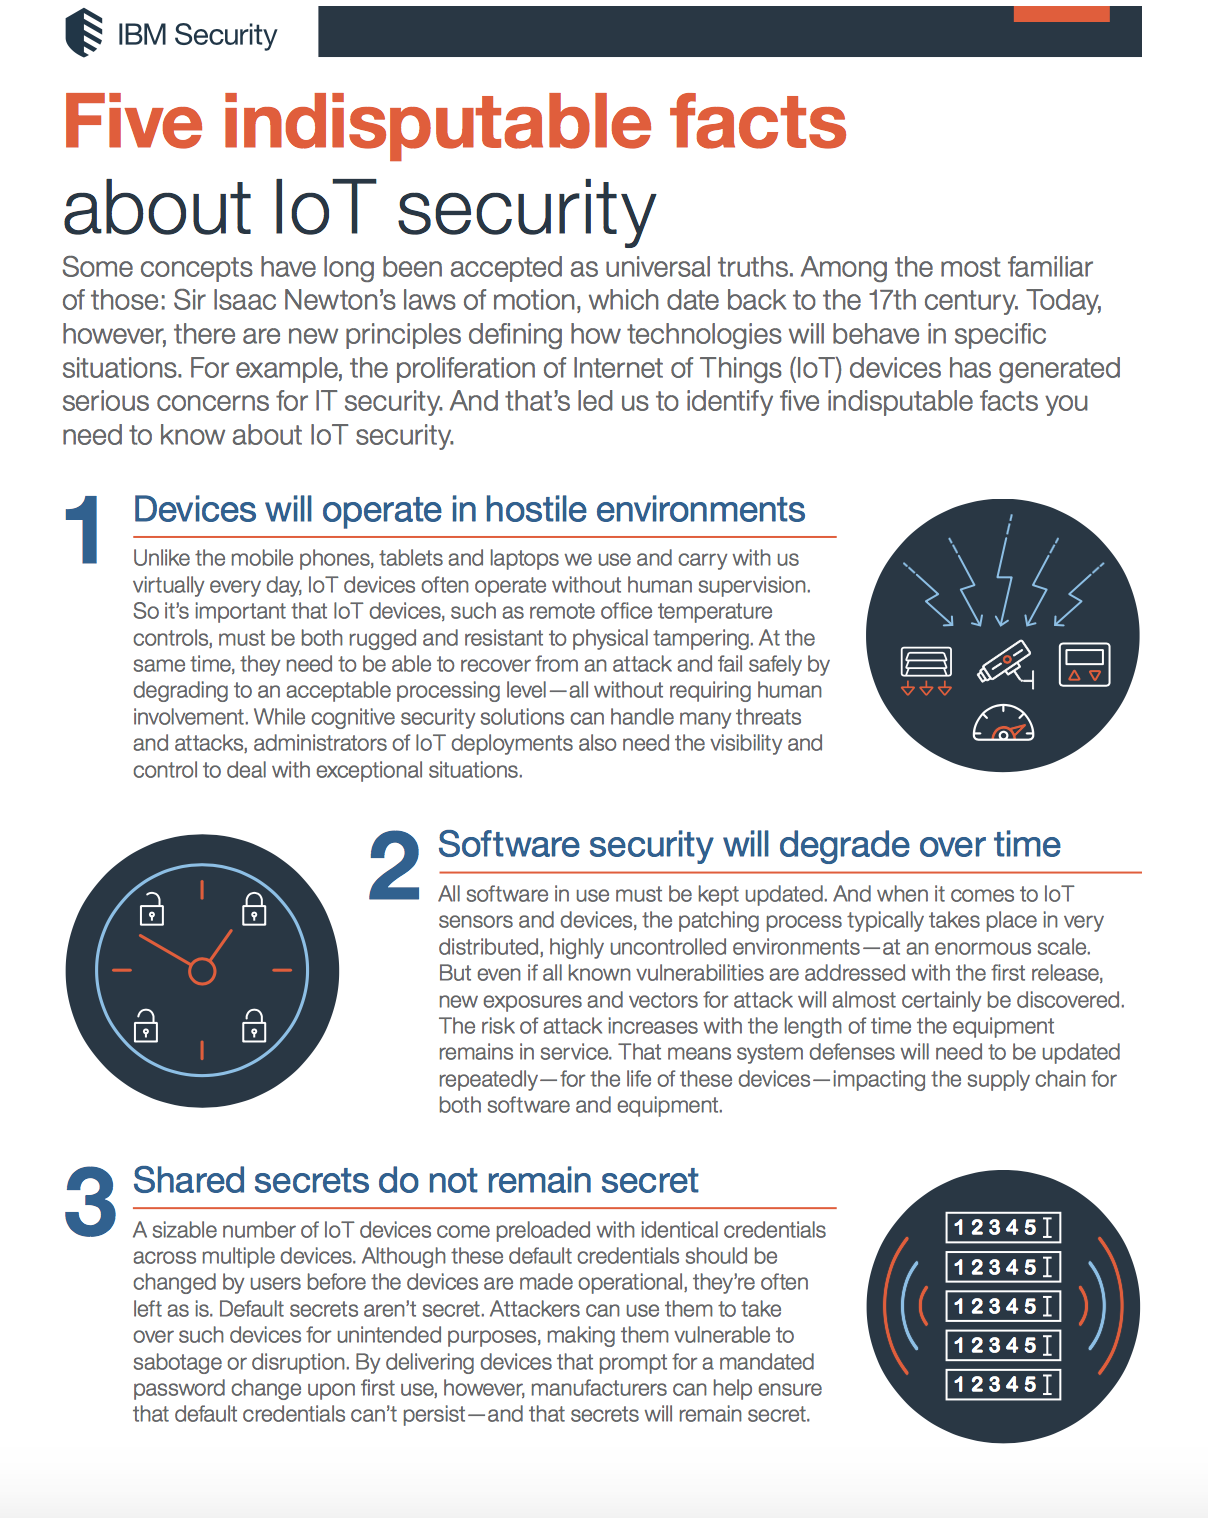 Learn more about the security trend in this handy inforgraphic: Five indisputable facts about IoT security